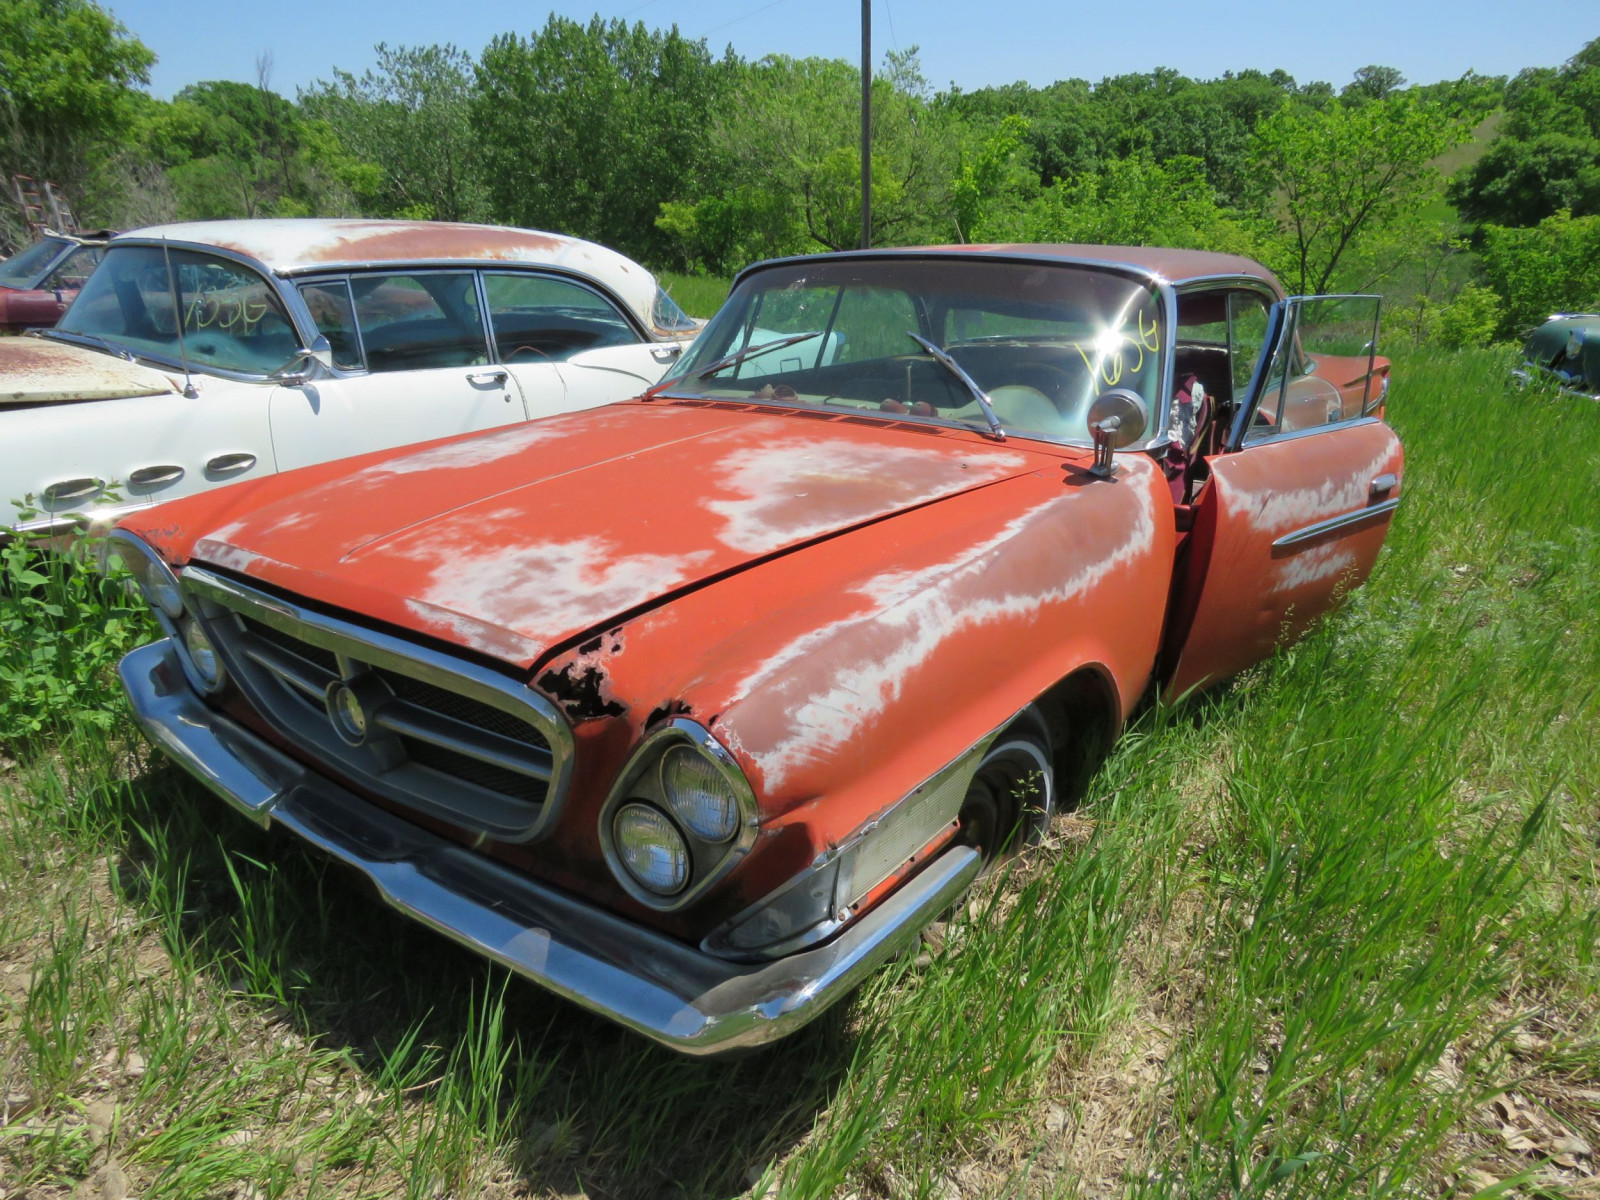 Chrysler 4dr Sedan for Rod or Restore or parts - Image 1